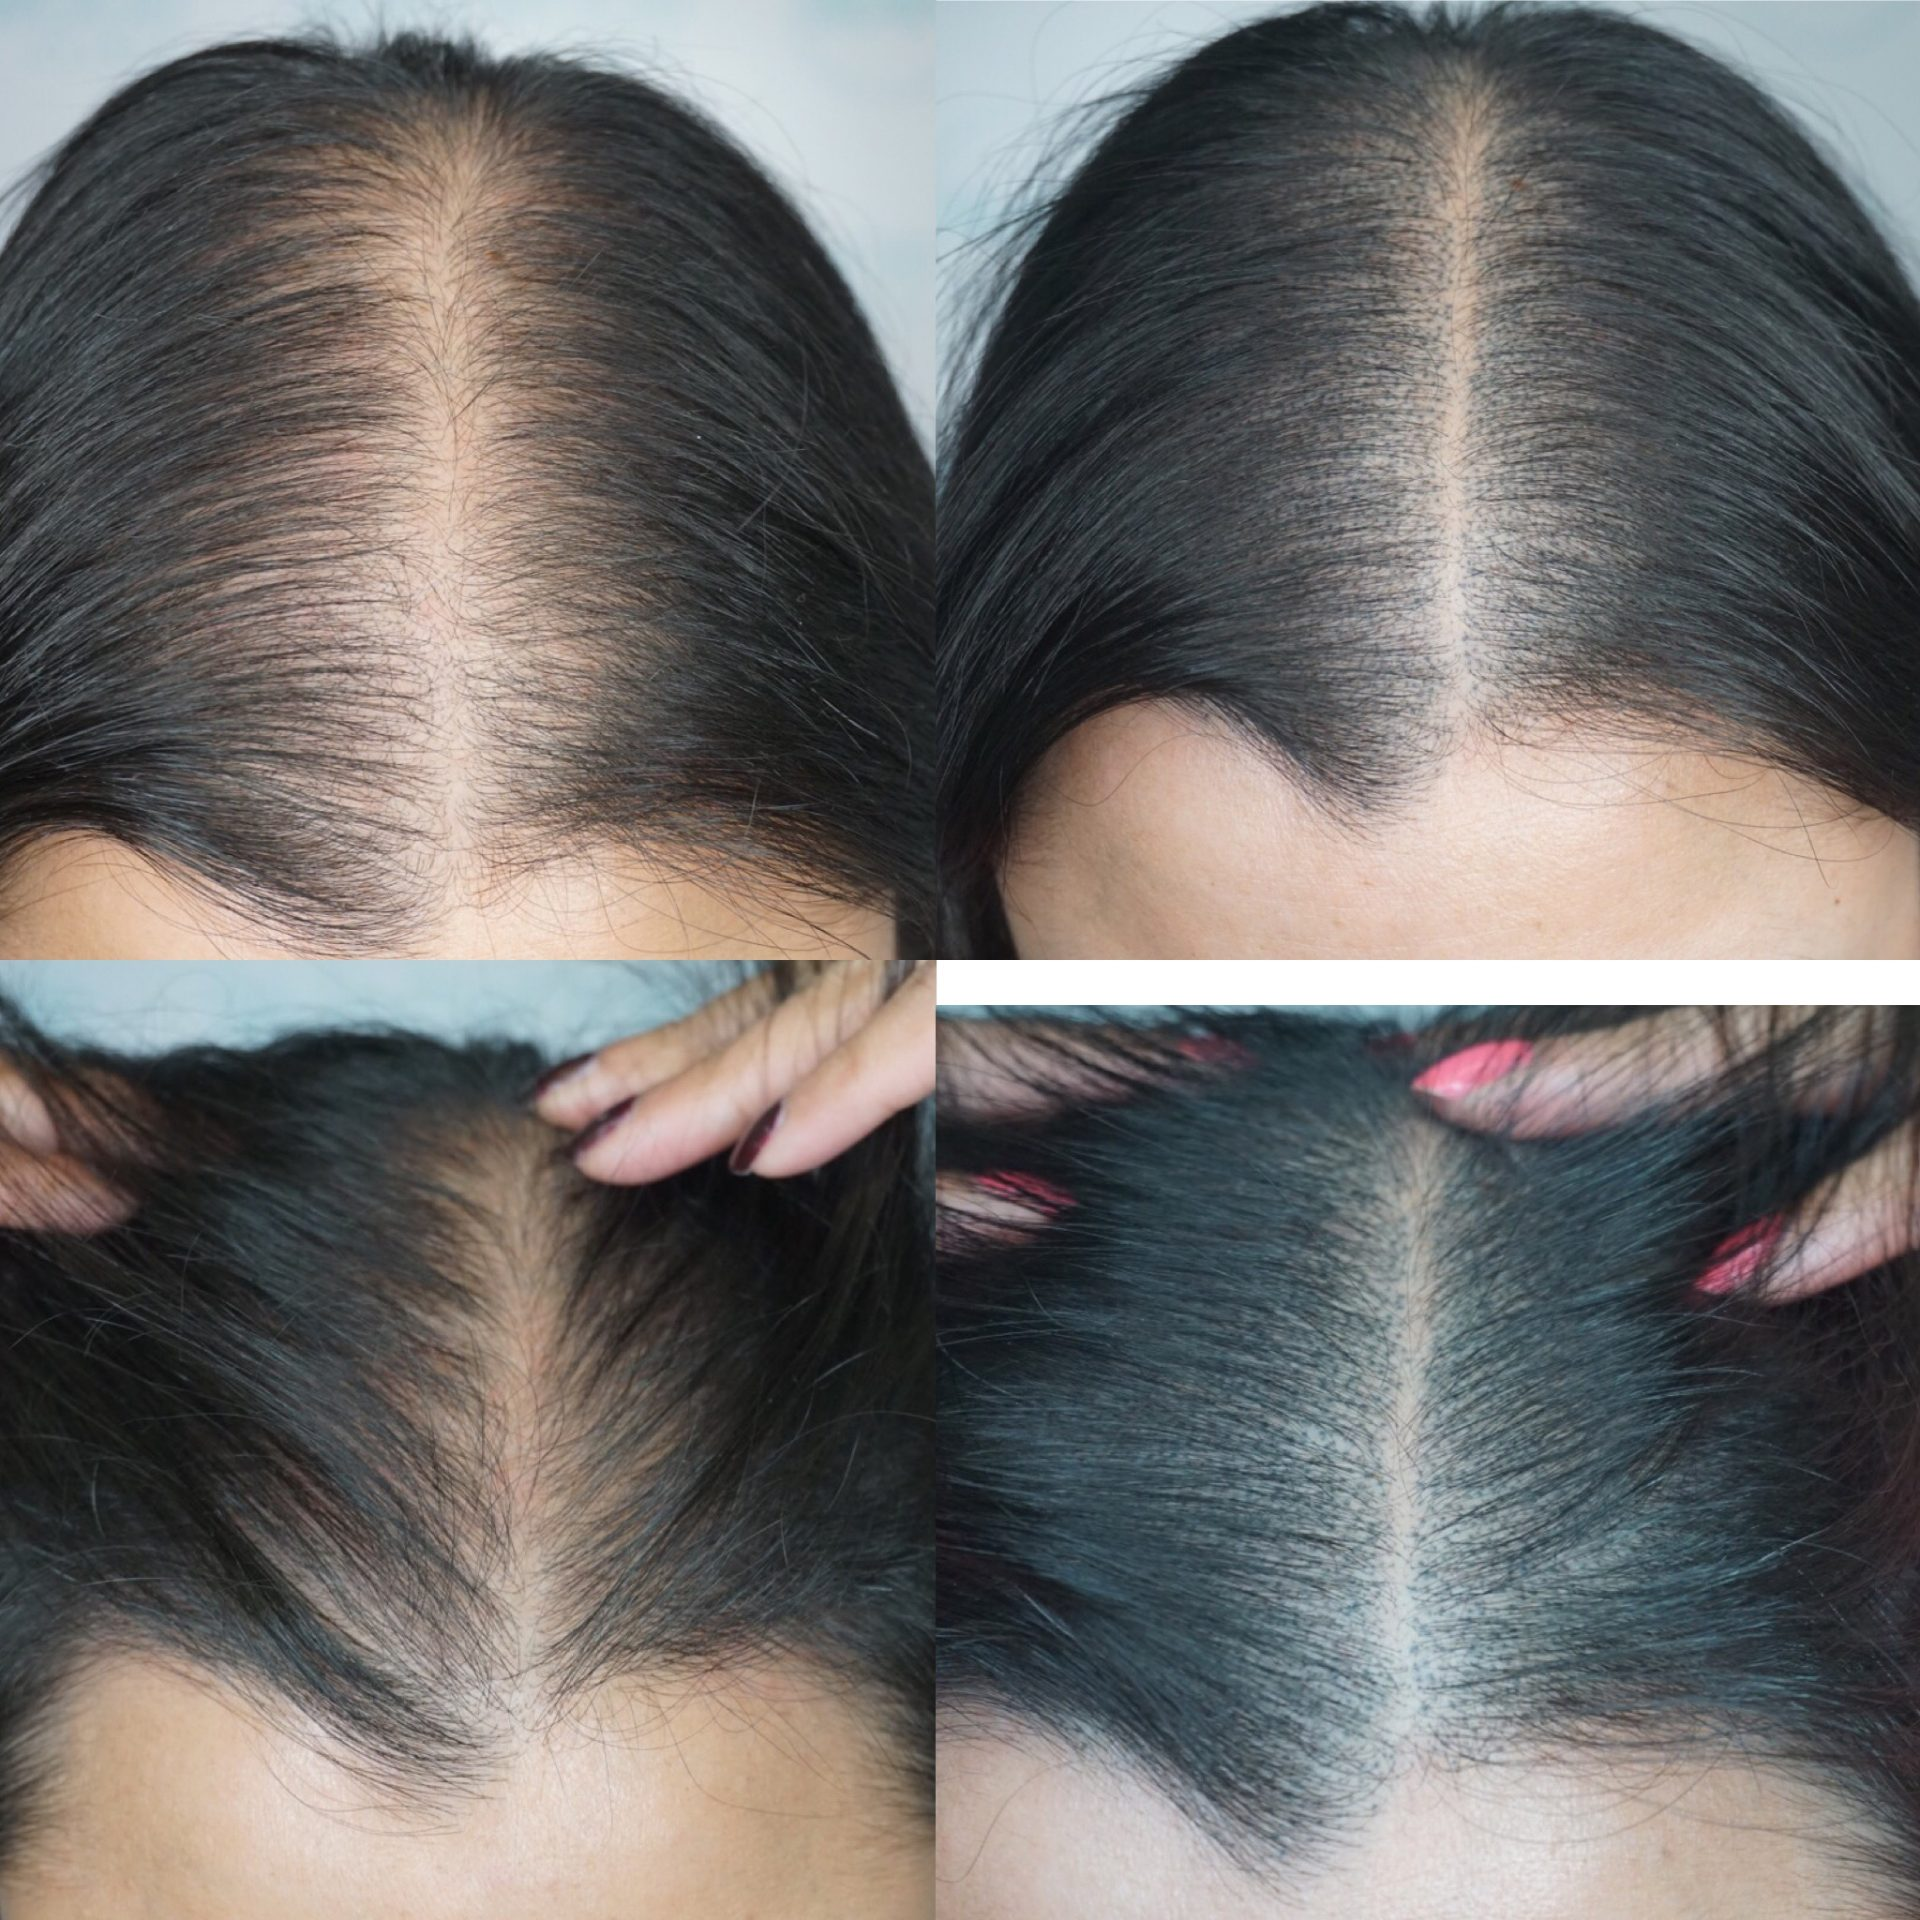 Asian female hair loss, SMP